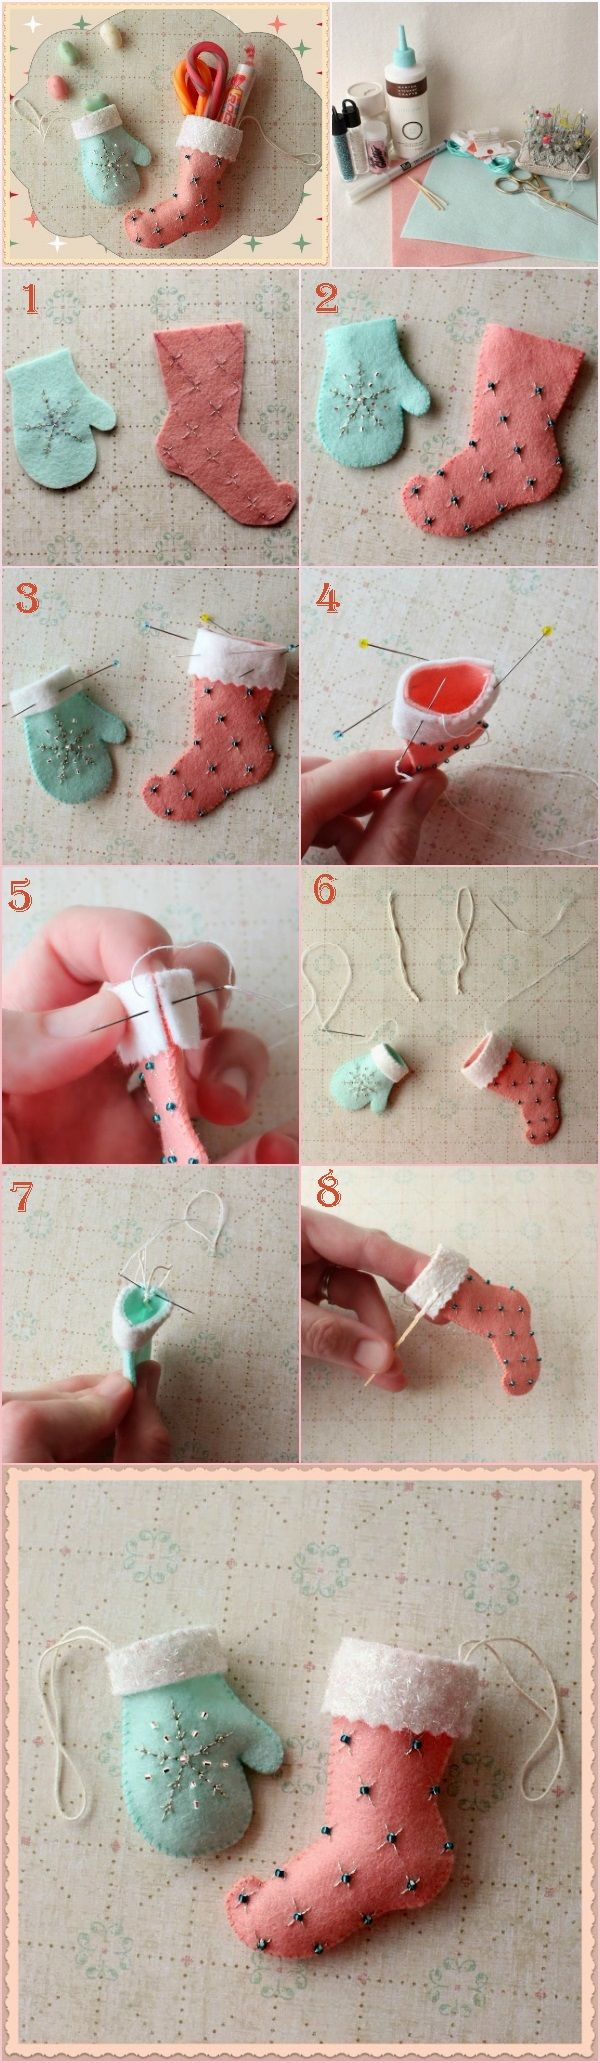 Christmas Stocking and Glove Ornaments | DIY Fun Tips